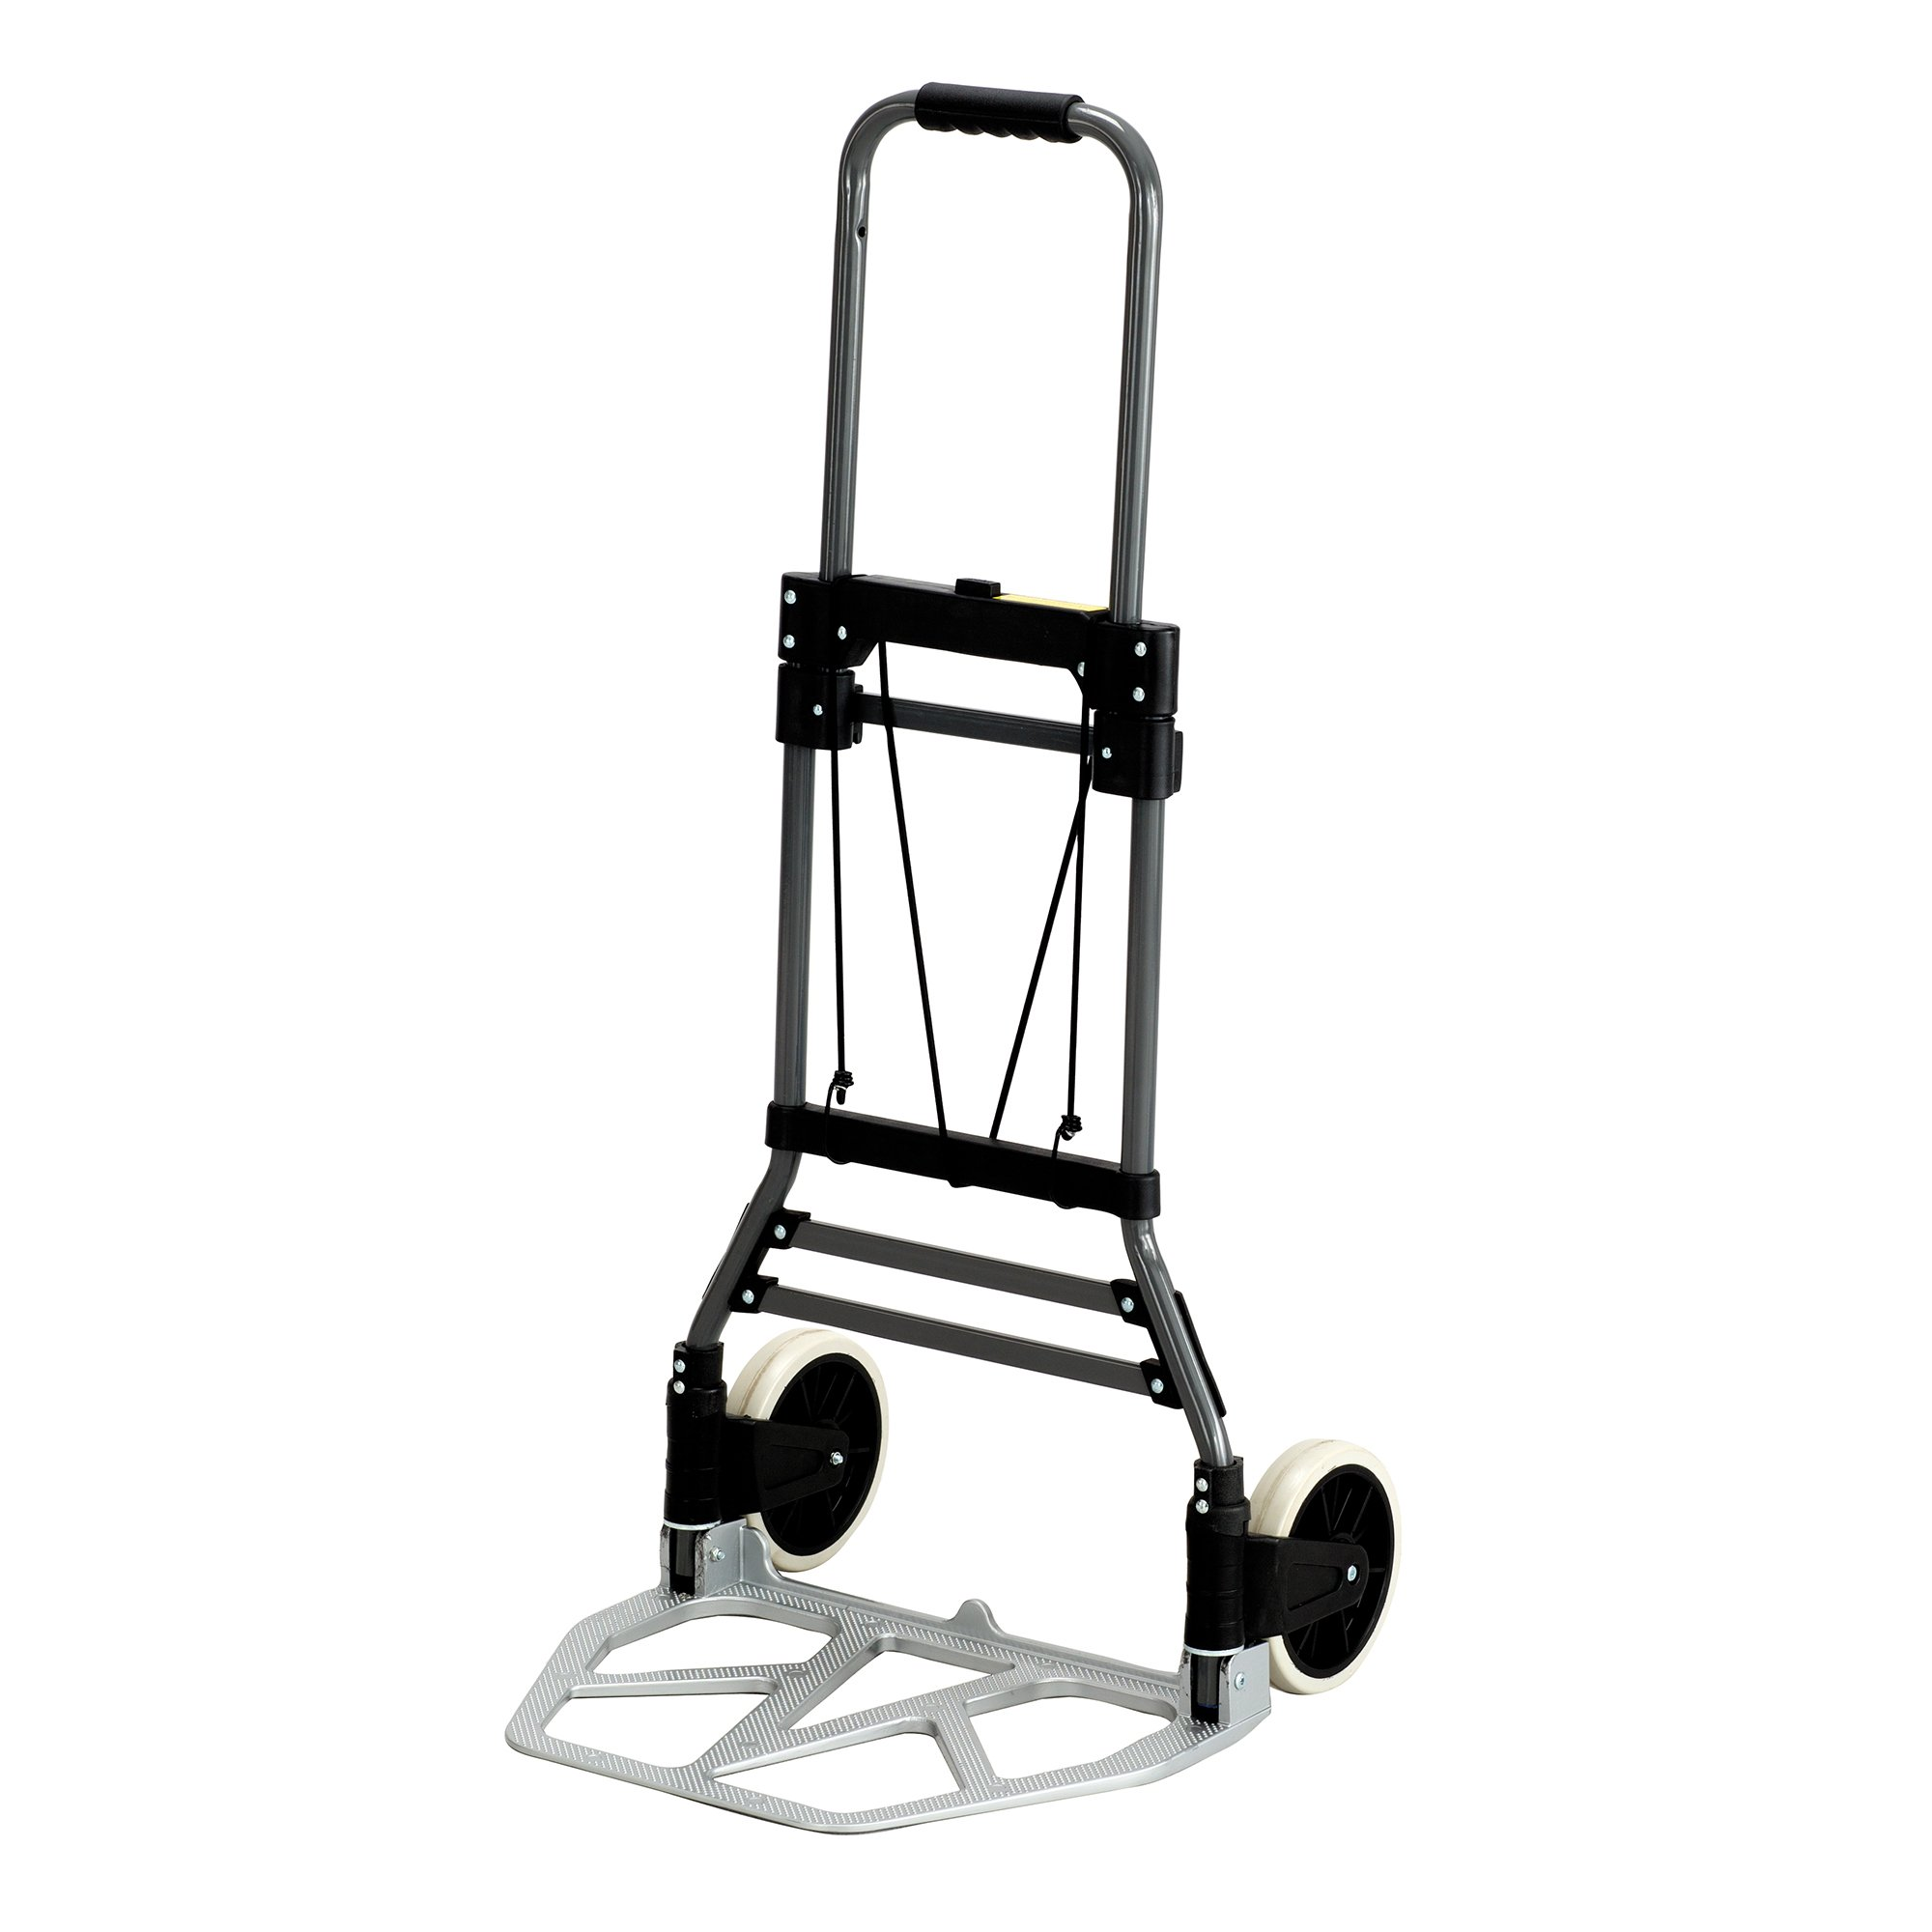 Safco Products 4062 Stow-Away Collapsible Utility Hand Truck, Silver/Black